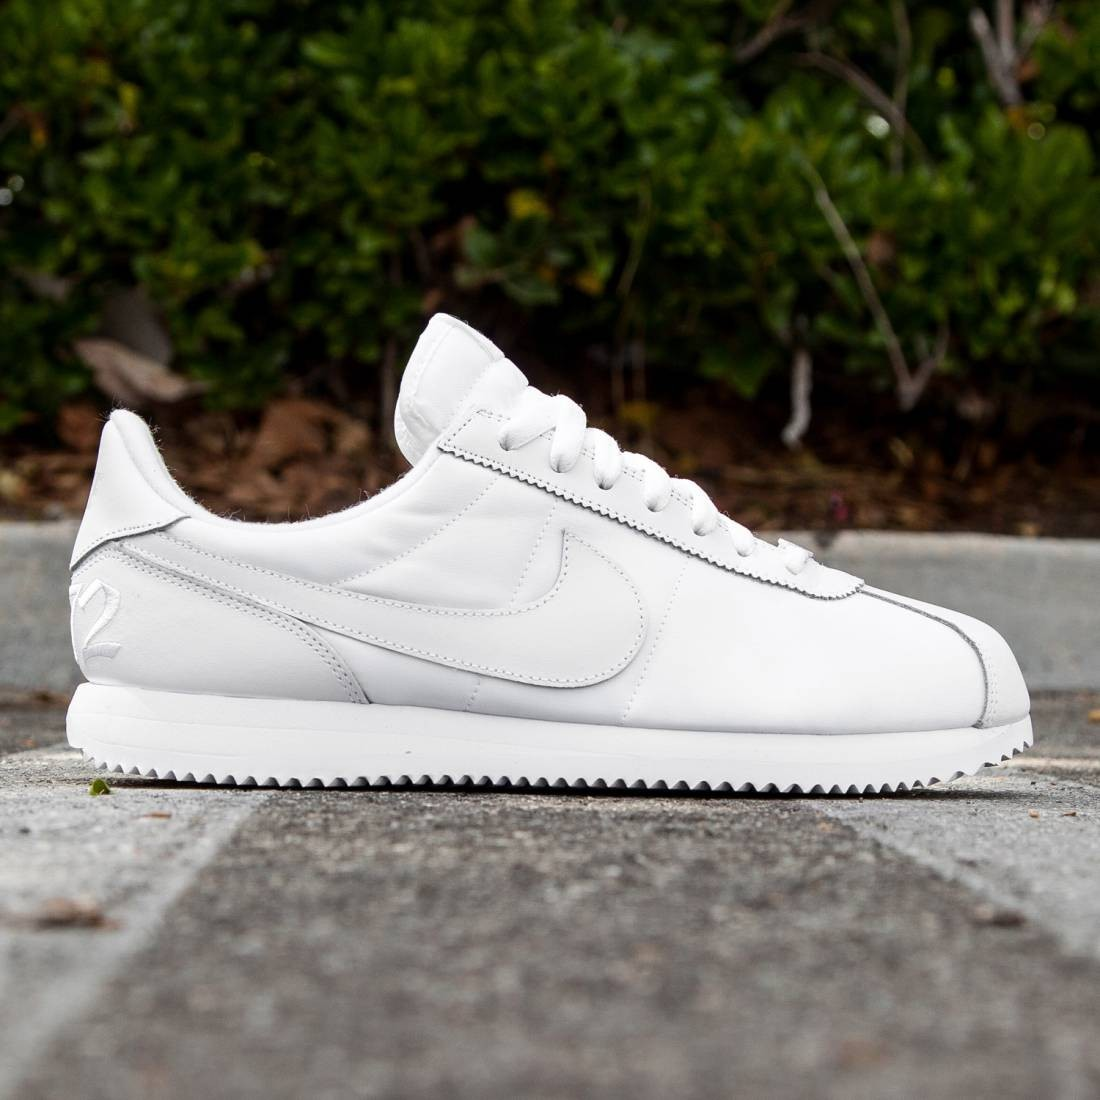 separation shoes 844ea aafbe alle suede nike cortez